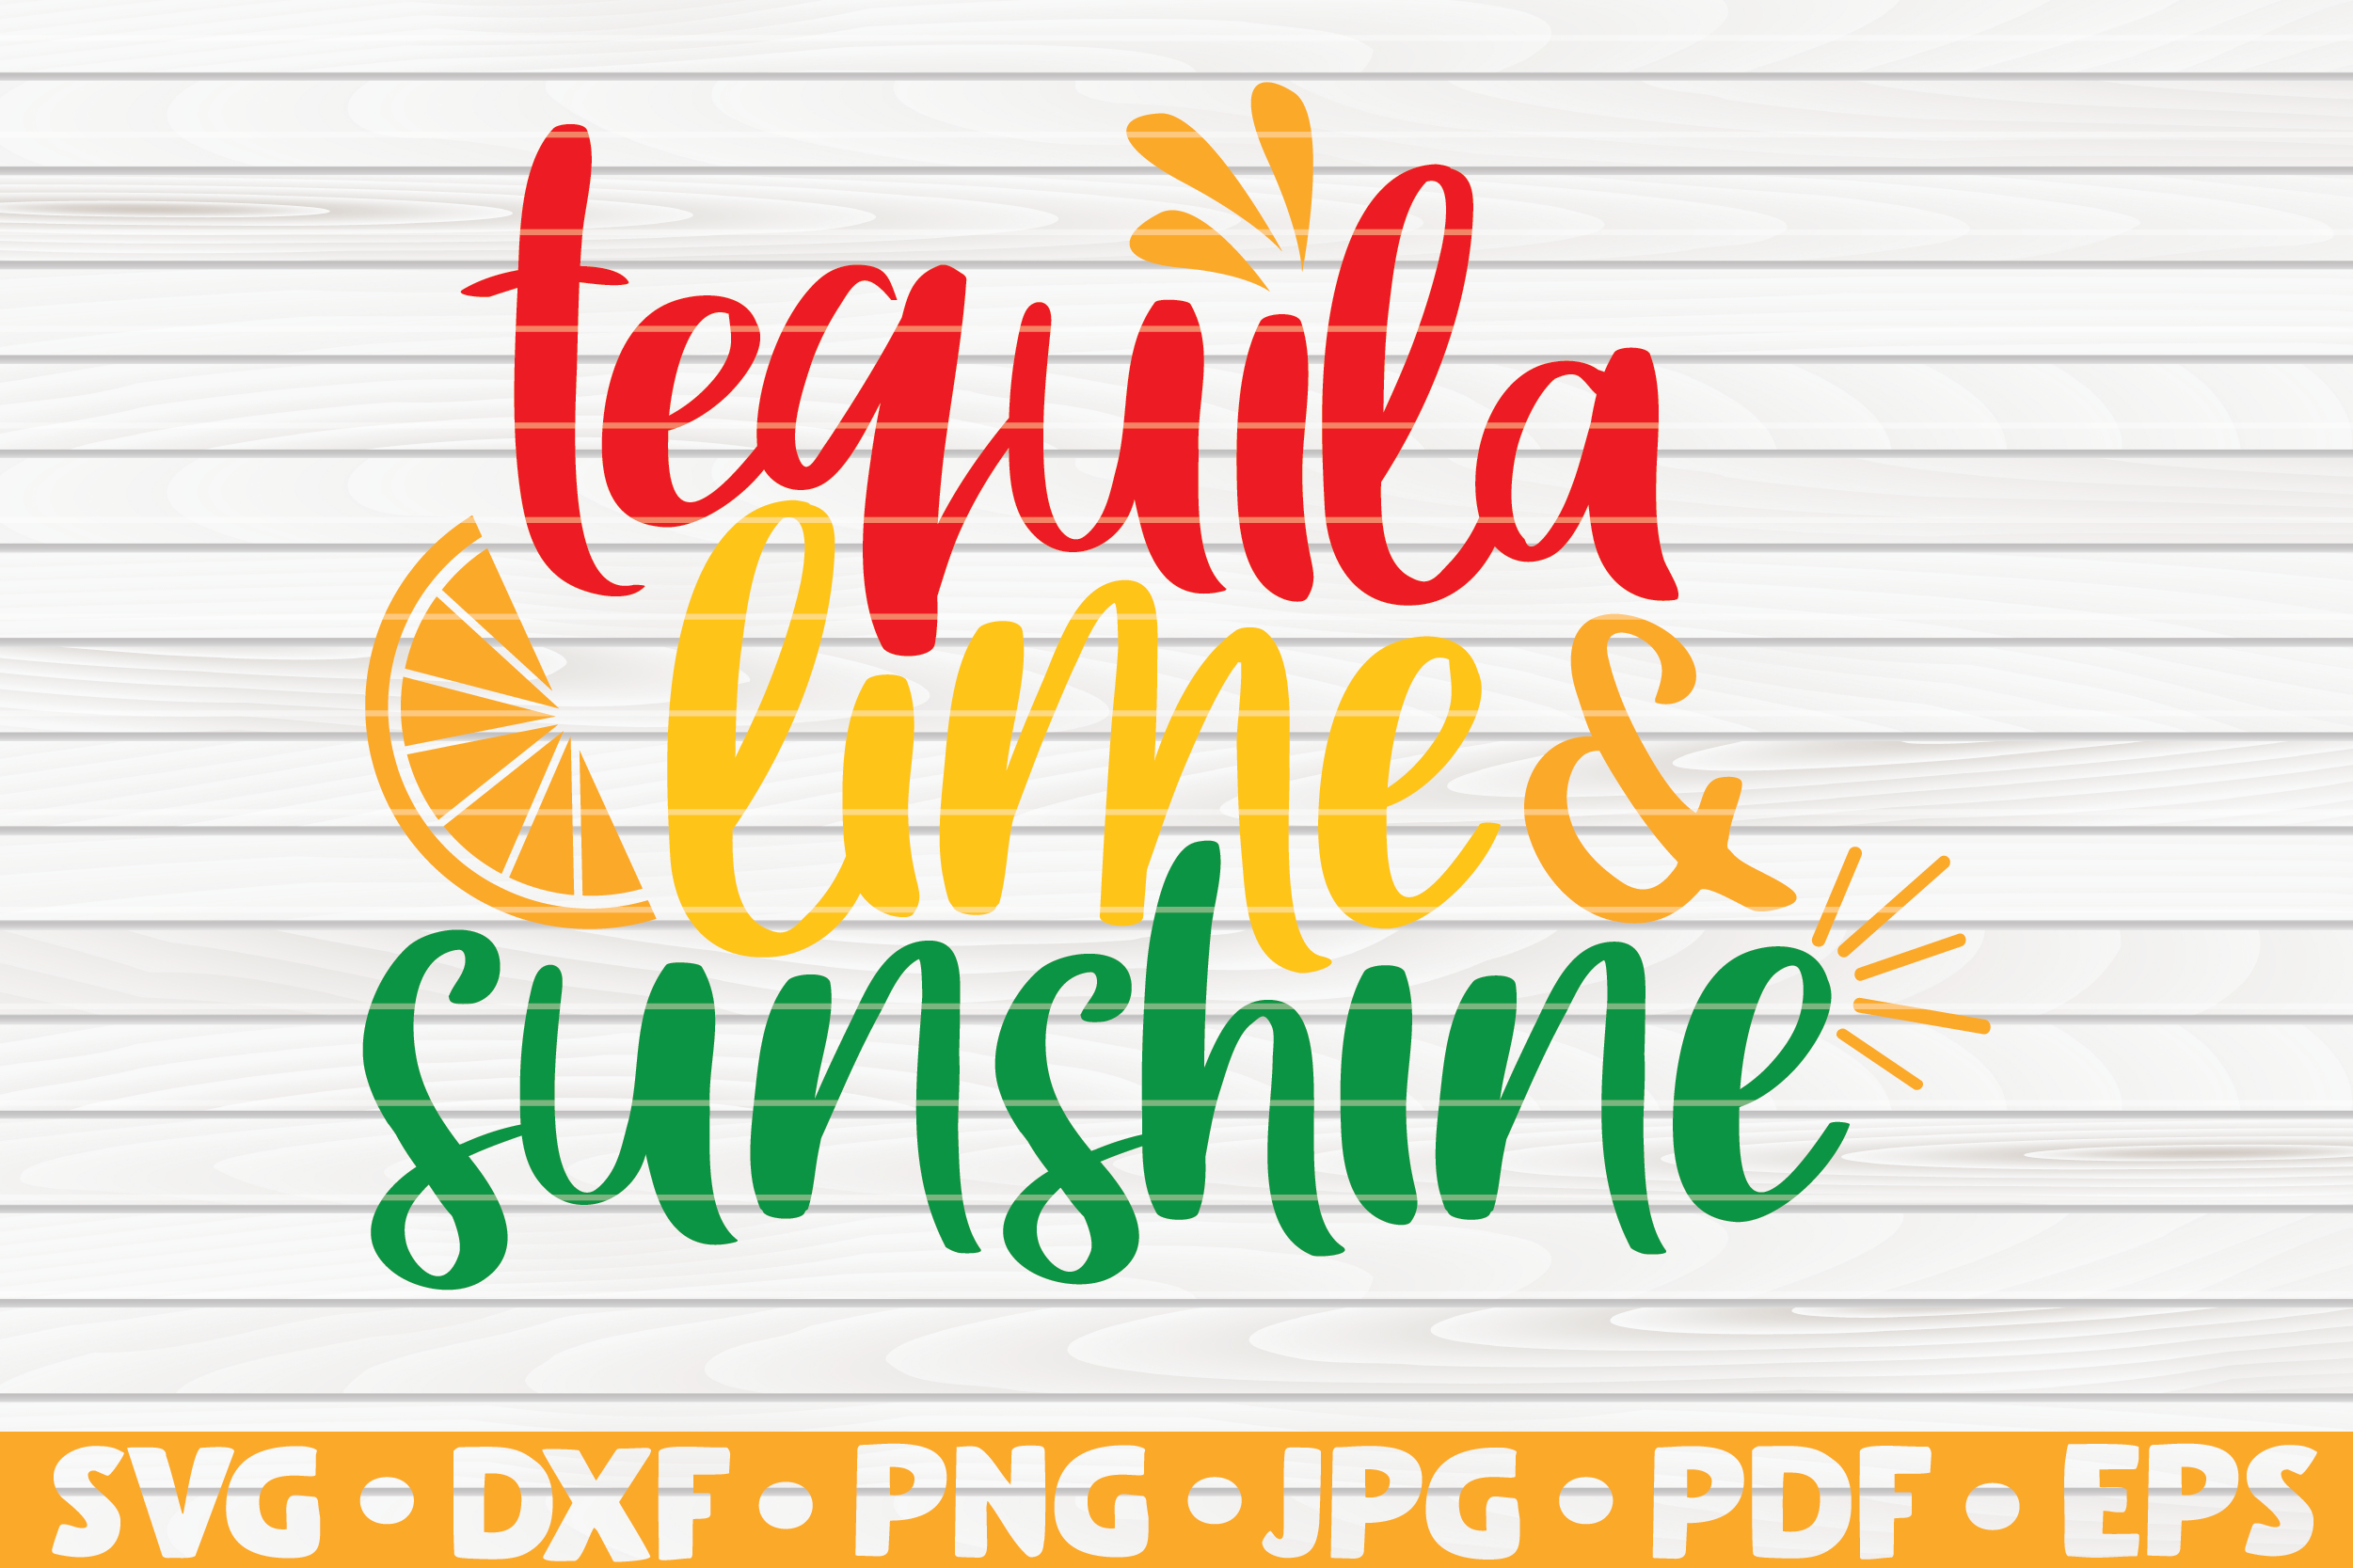 Download Free Tequila Lime And Sunshine Vector Graphic By Mihaibadea95 for Cricut Explore, Silhouette and other cutting machines.